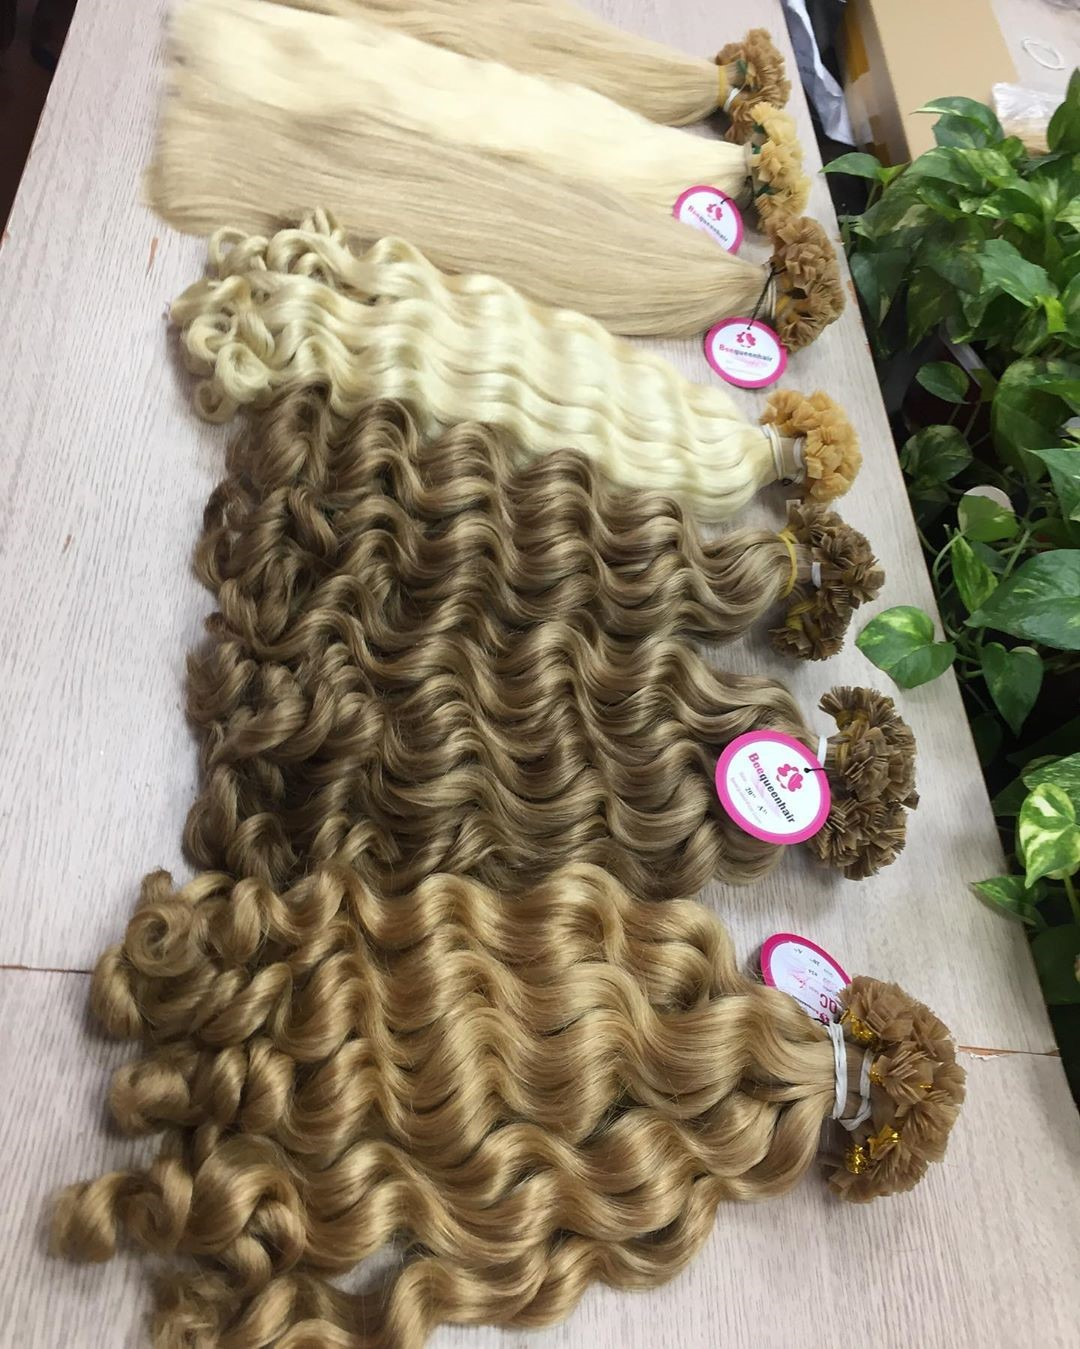 Diverse Curly Hair Extensions